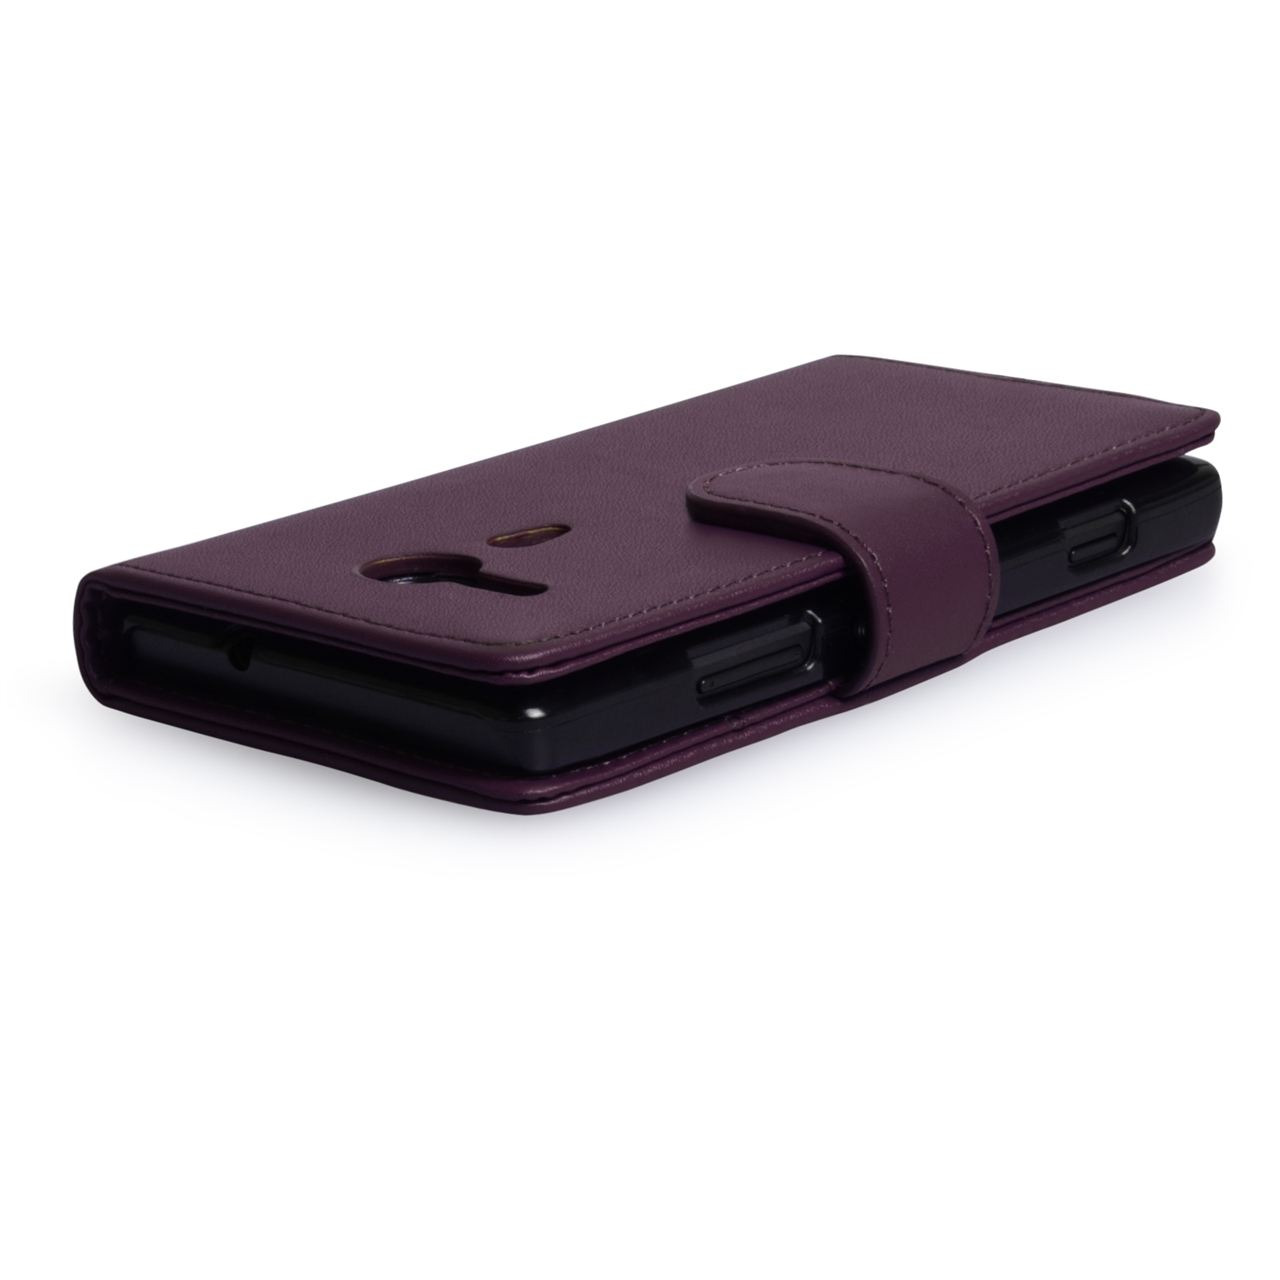 YouSave Accessories Sony Xperia SP Leather-Effect Wallet Case - Purple